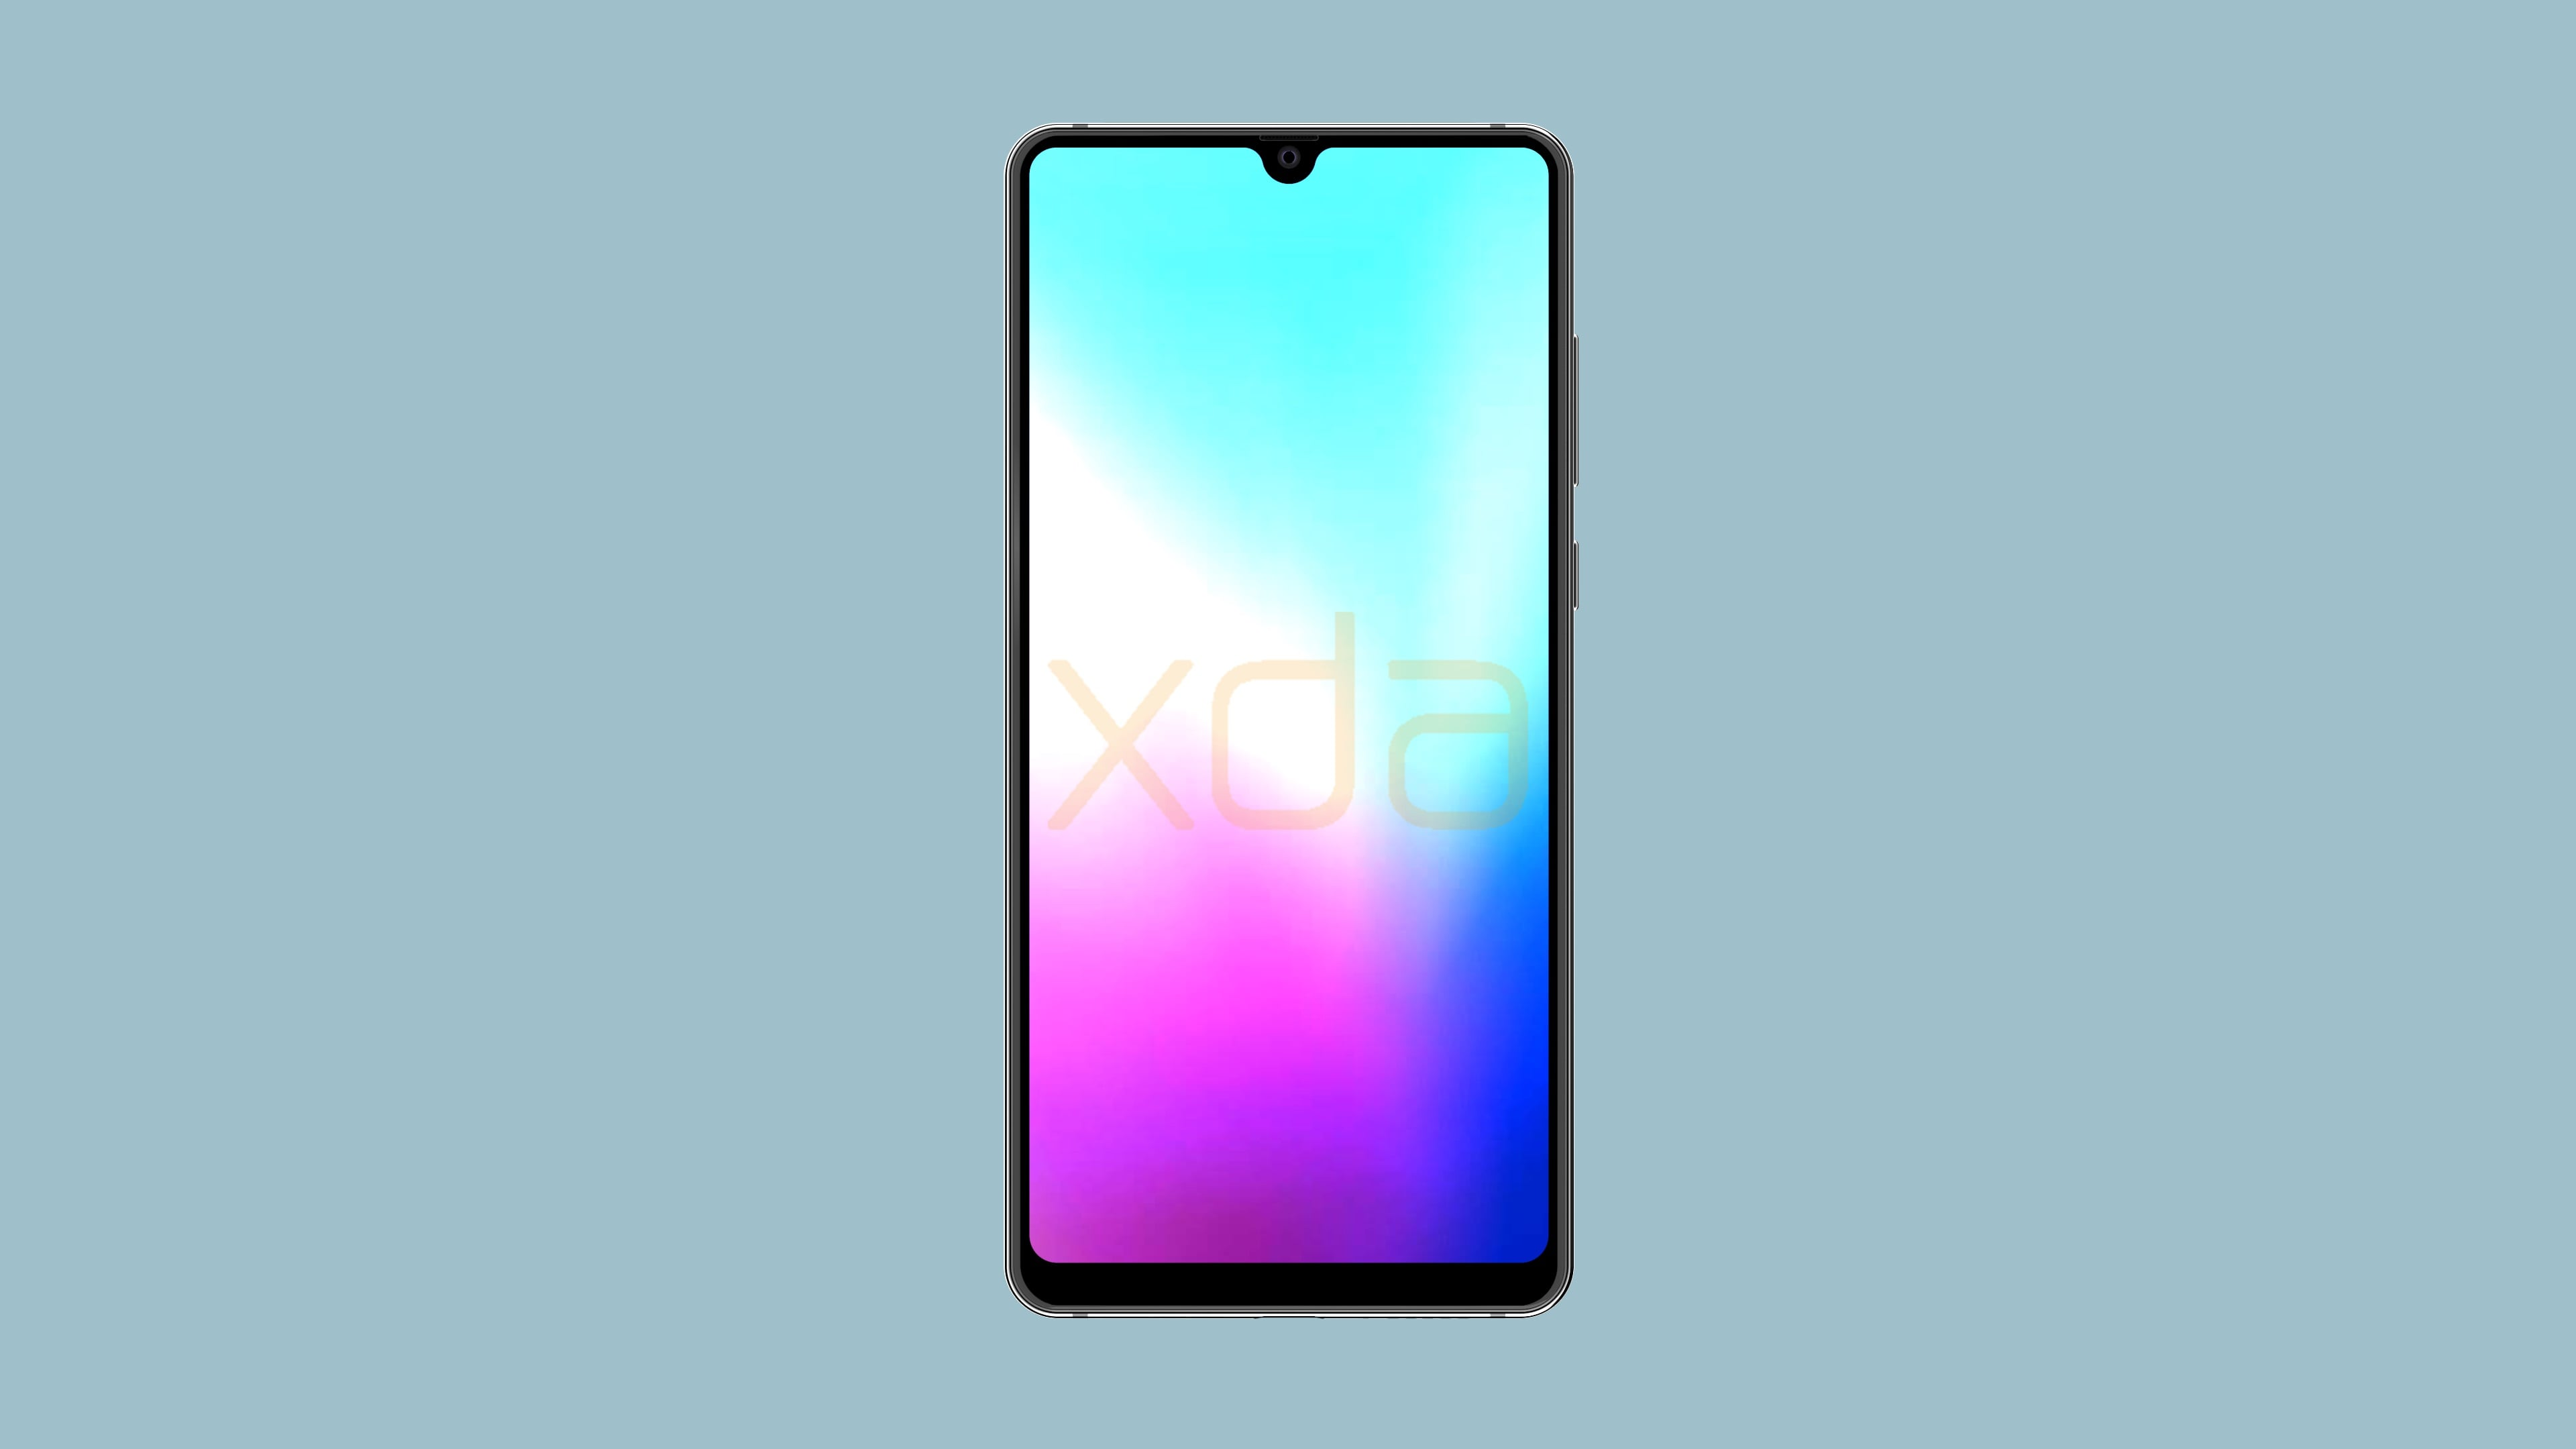 Huawei Mate 20 Release Date, Price And Specs